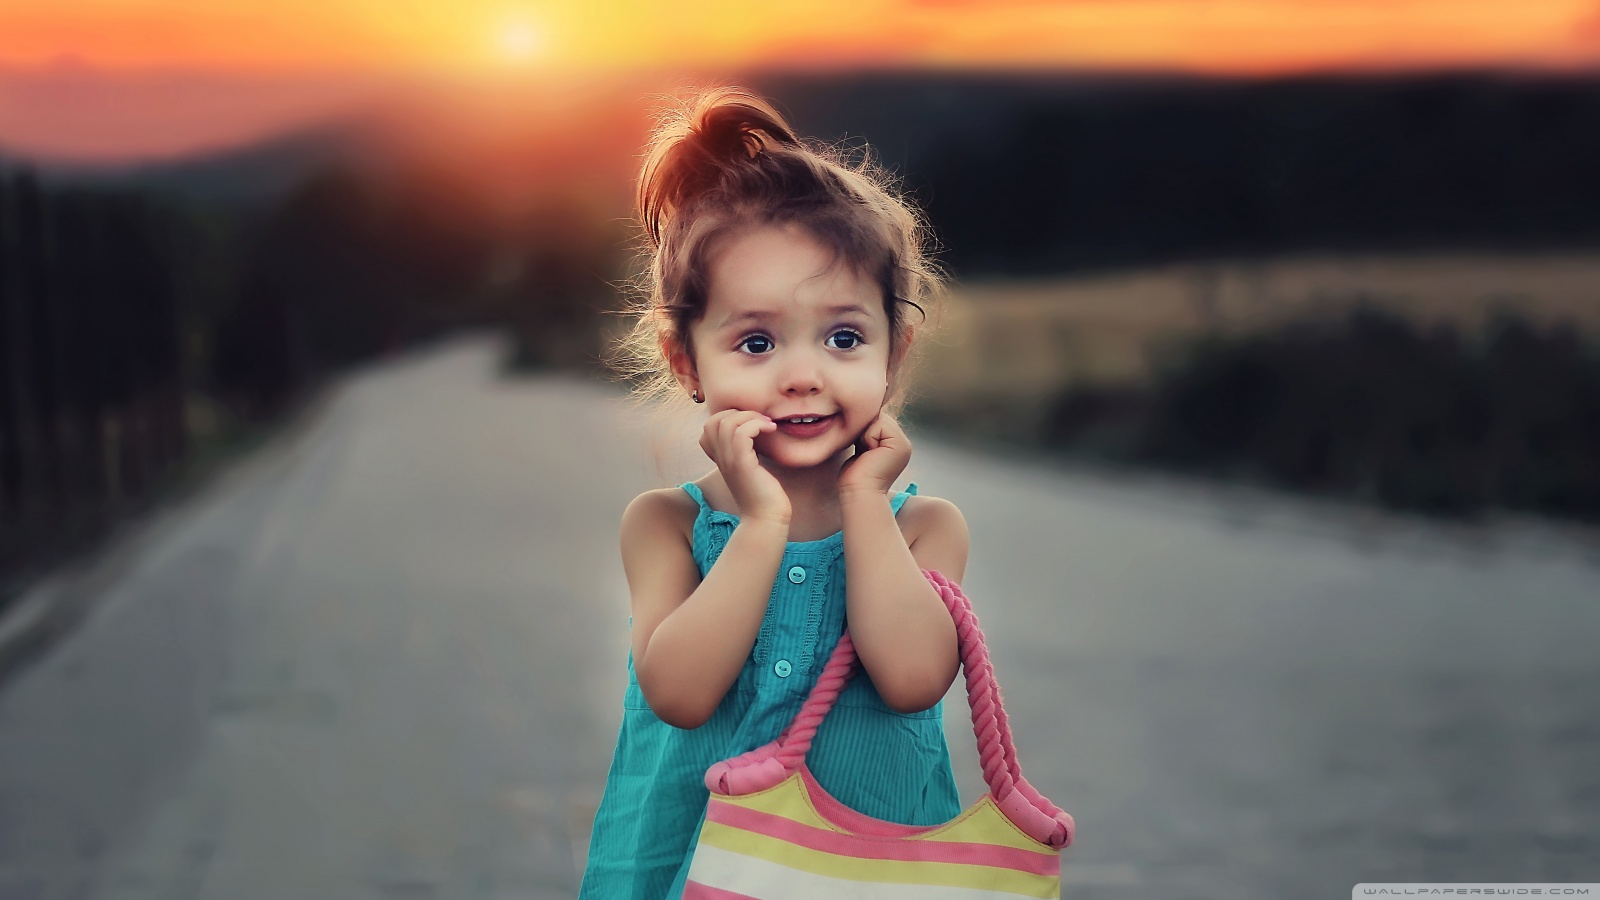 Cute Stylish Child Girl